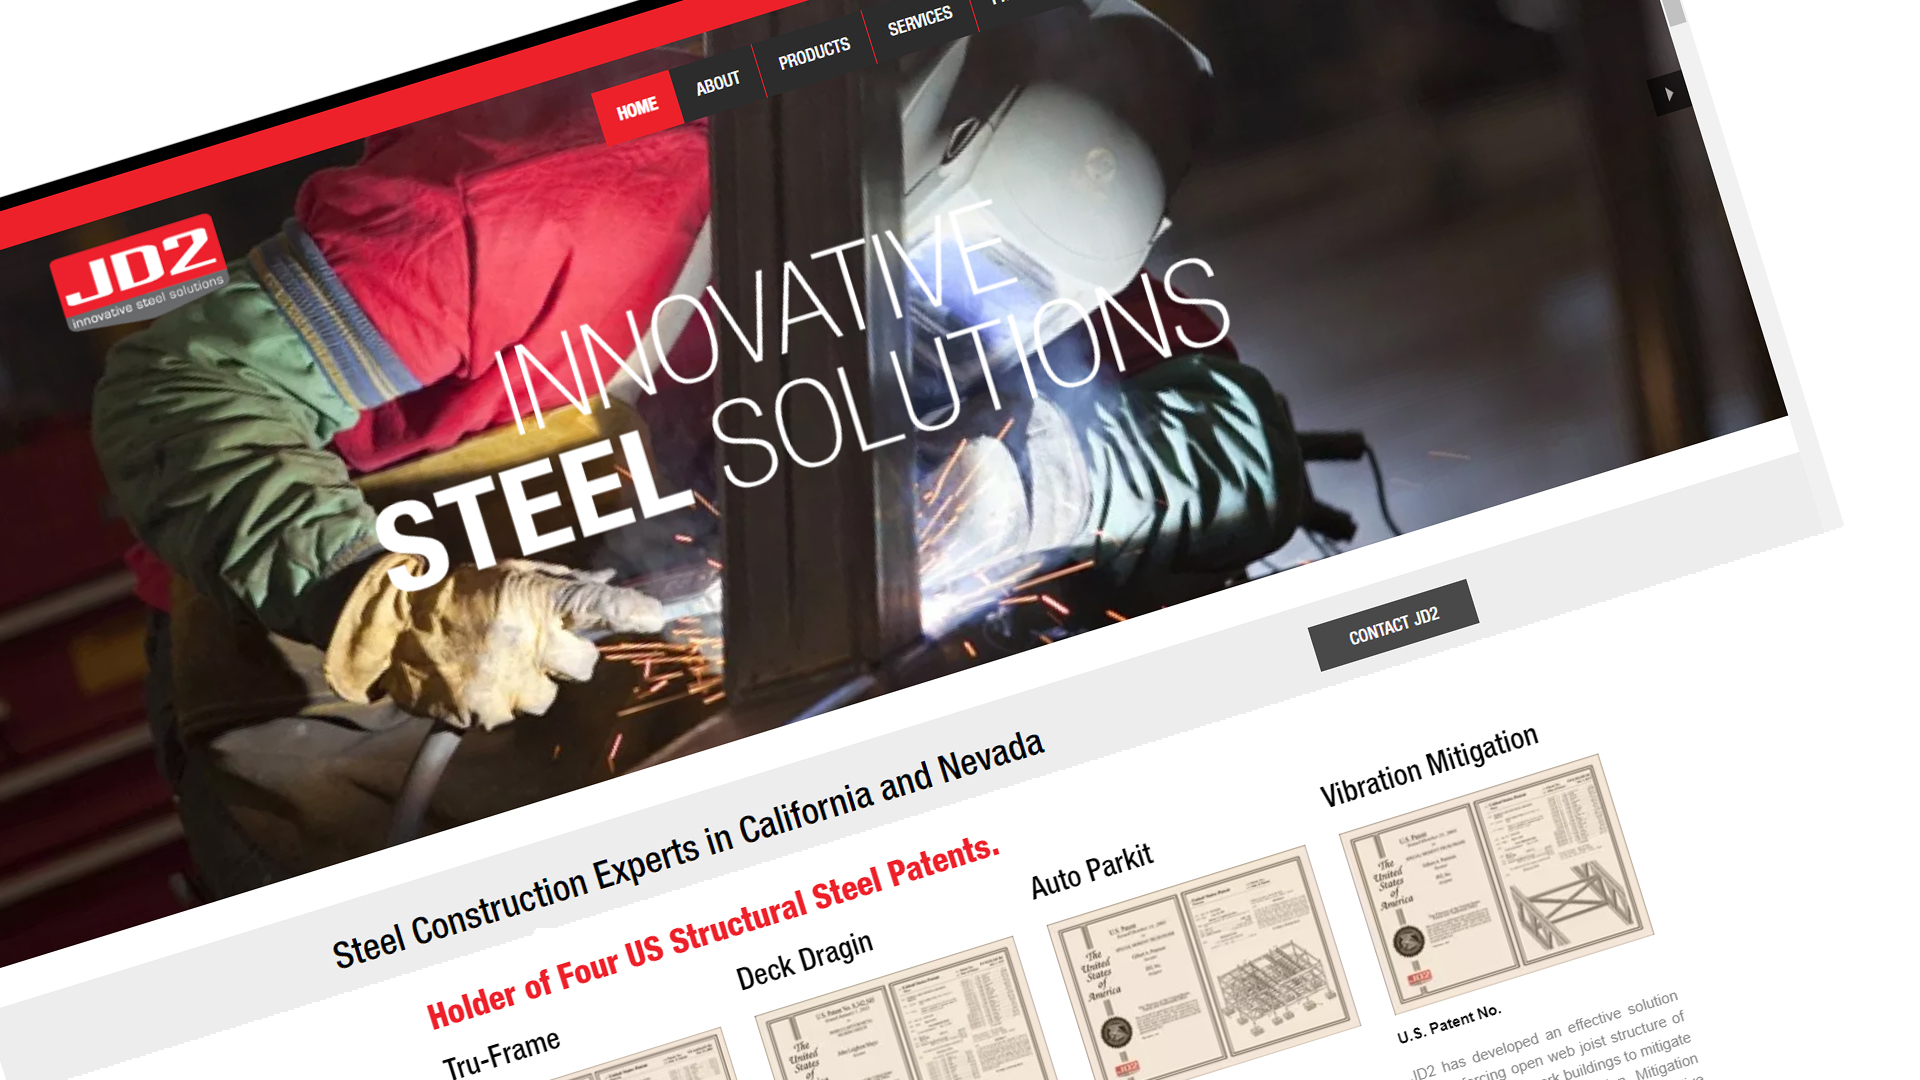 JD2 Steel Solutions